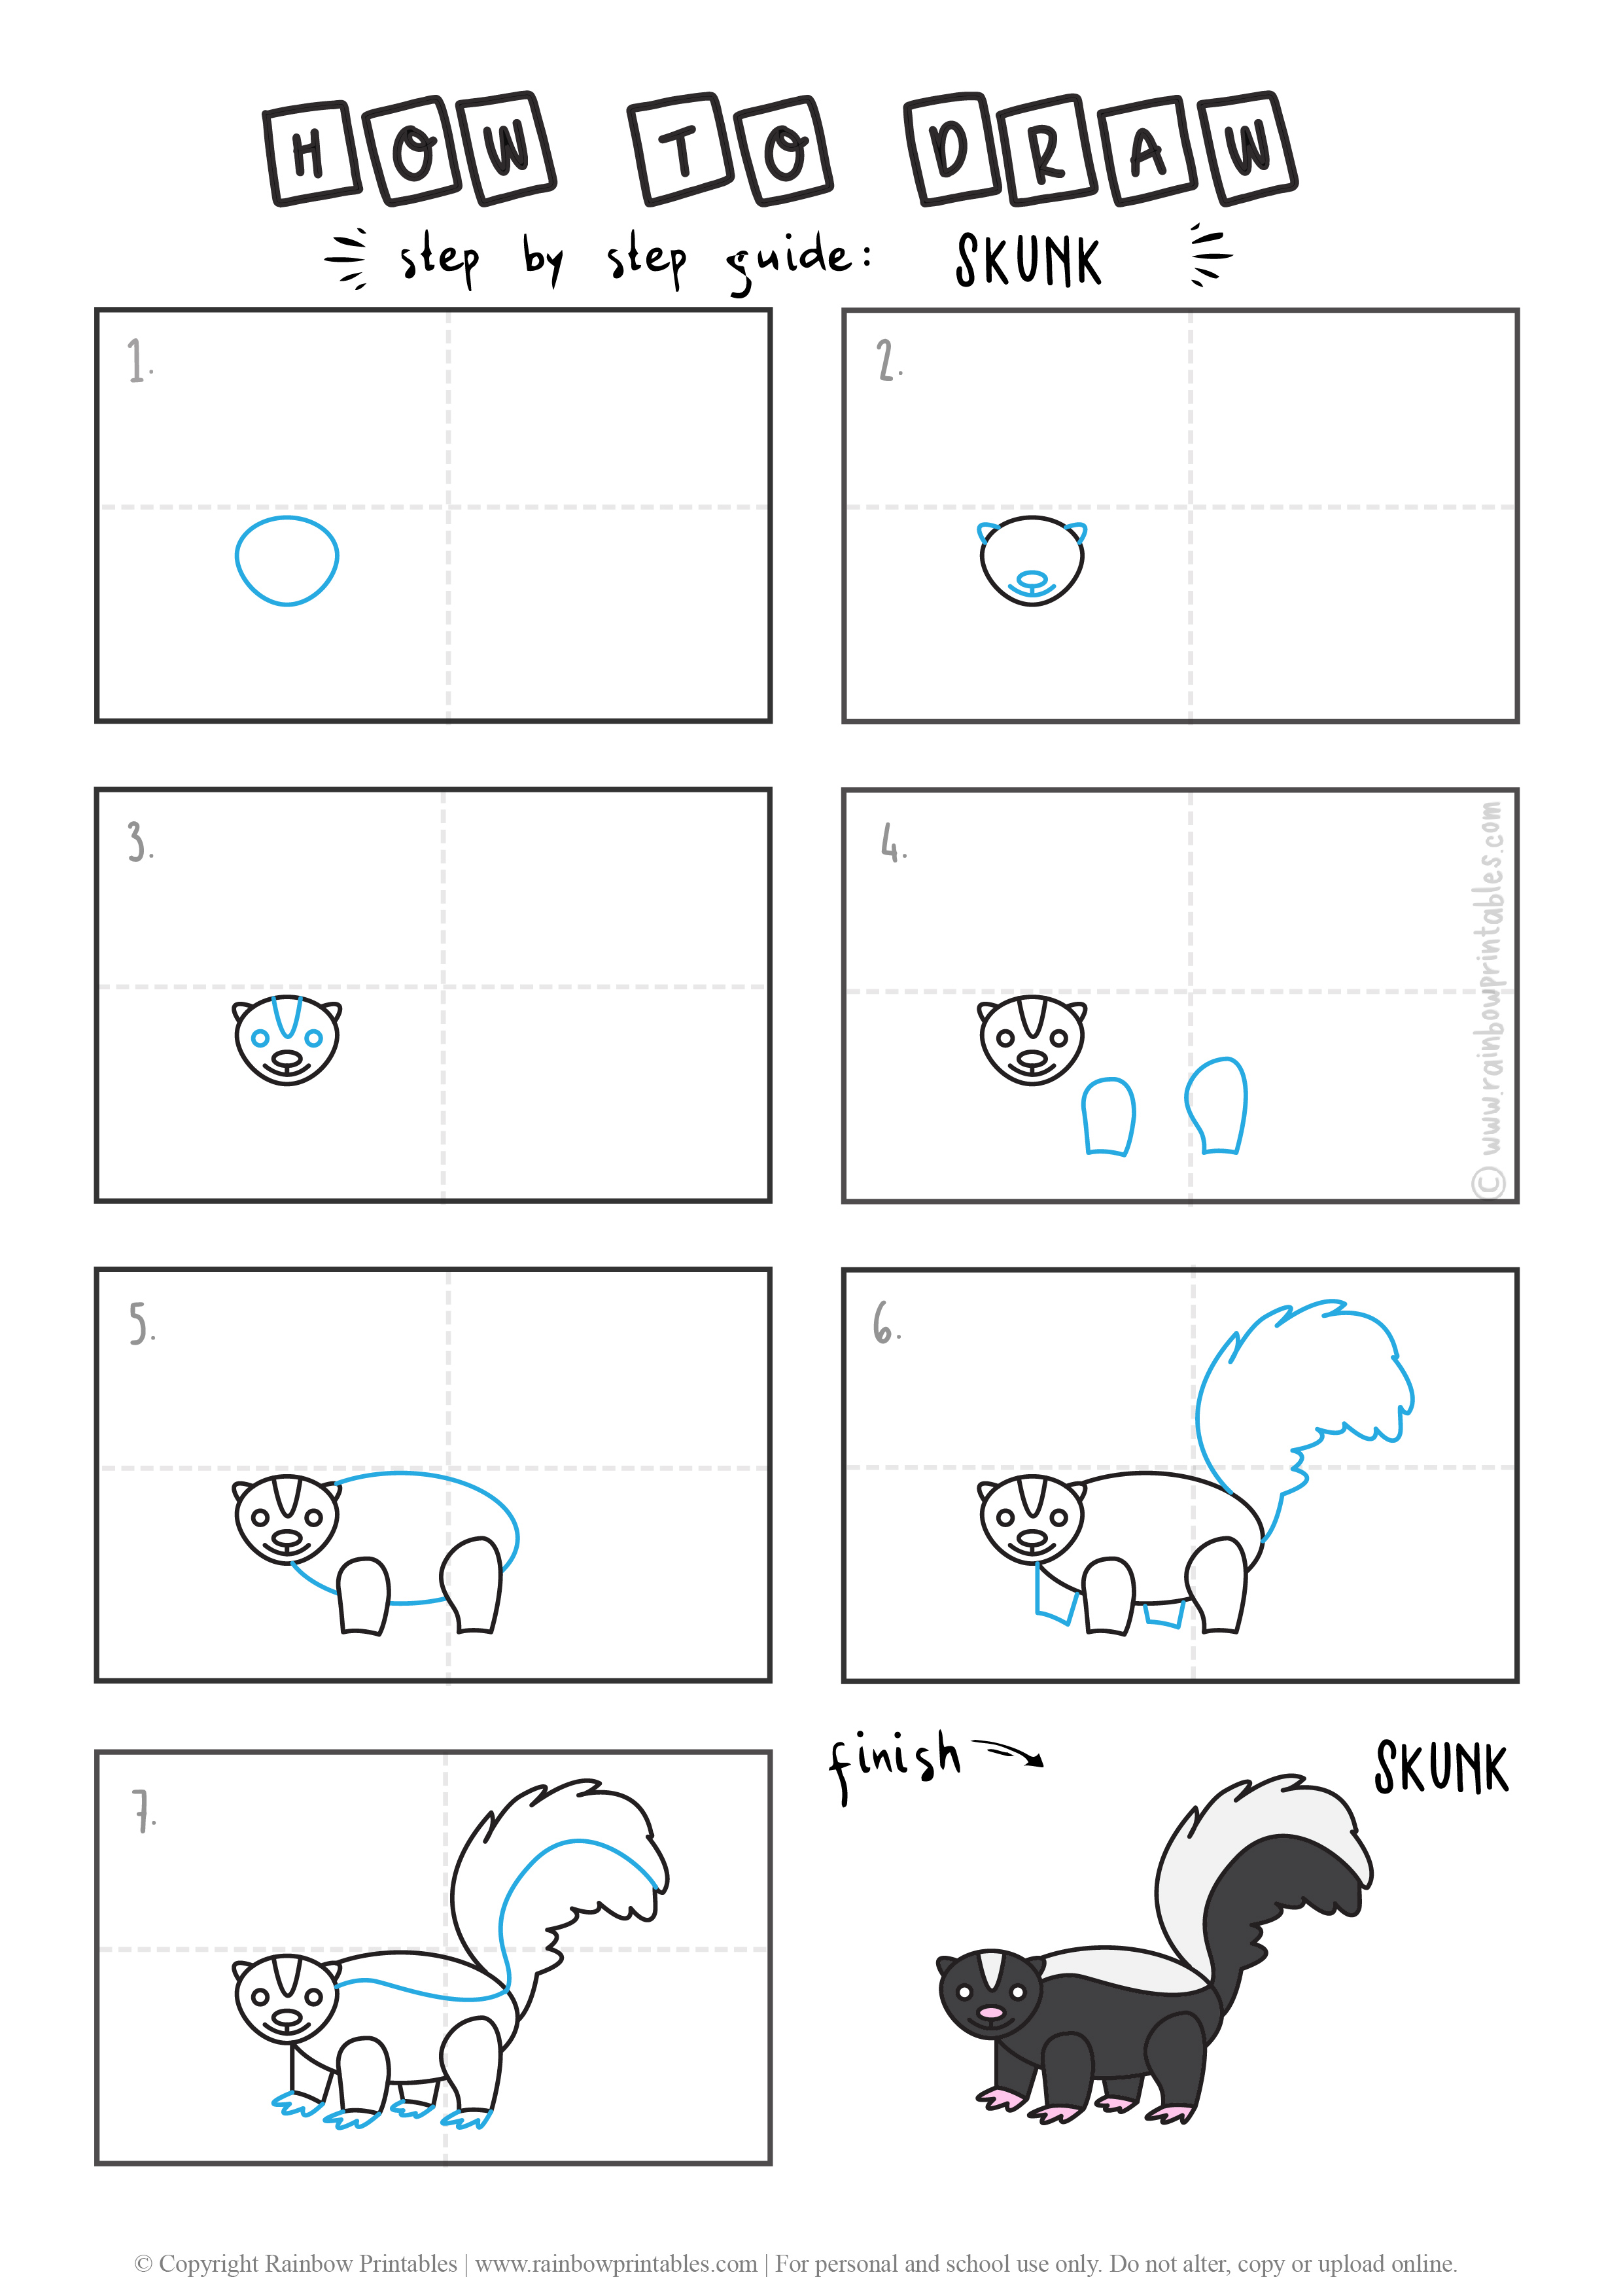 HOW TO DRAW ANIMAL SKUNK STINKY SPRAY GUIDE ILLUSTRATION STEP BY STEP EASY SIMPLE FOR KIDS